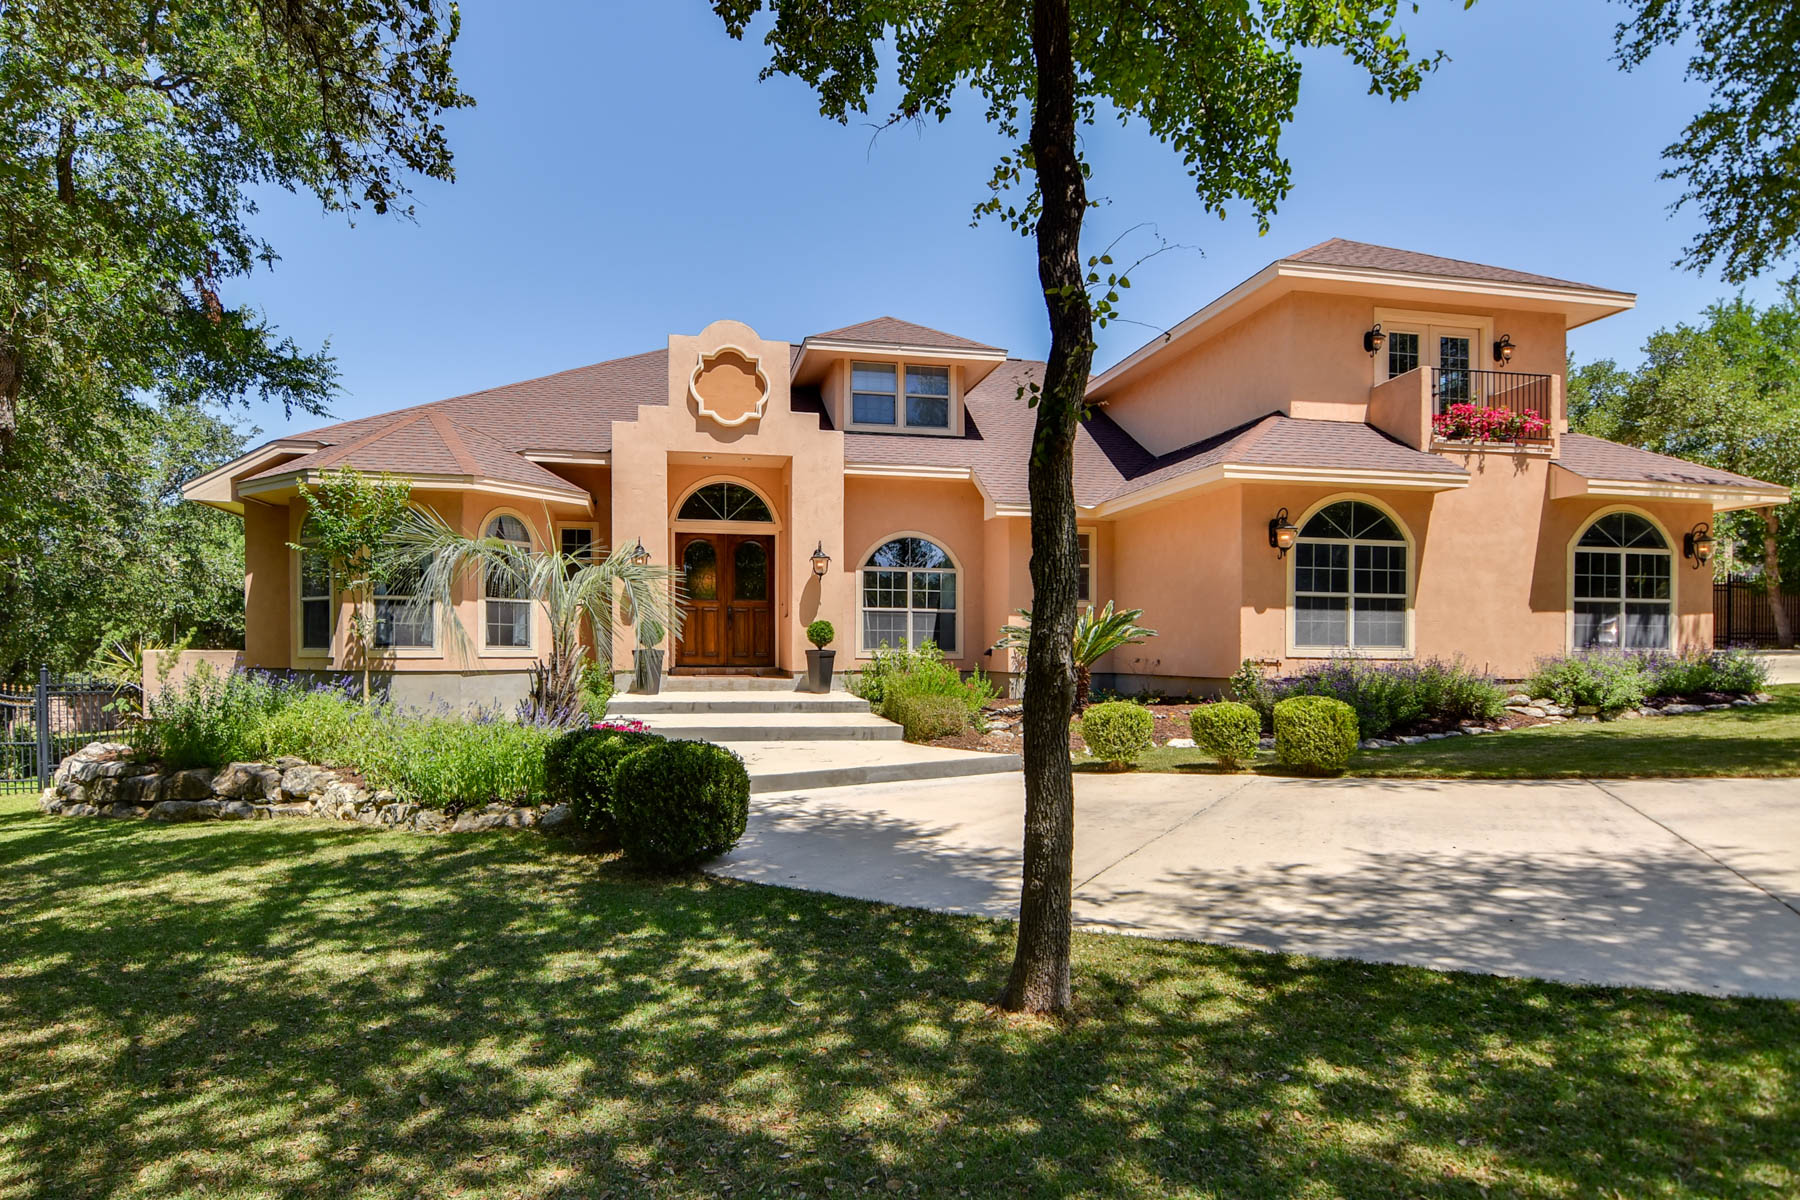 Single Family Home for Sale at Tranquil Home in Gated Community in Garden Ridge 19819 Zephyr Cv Garden Ridge, Texas 78266 United States